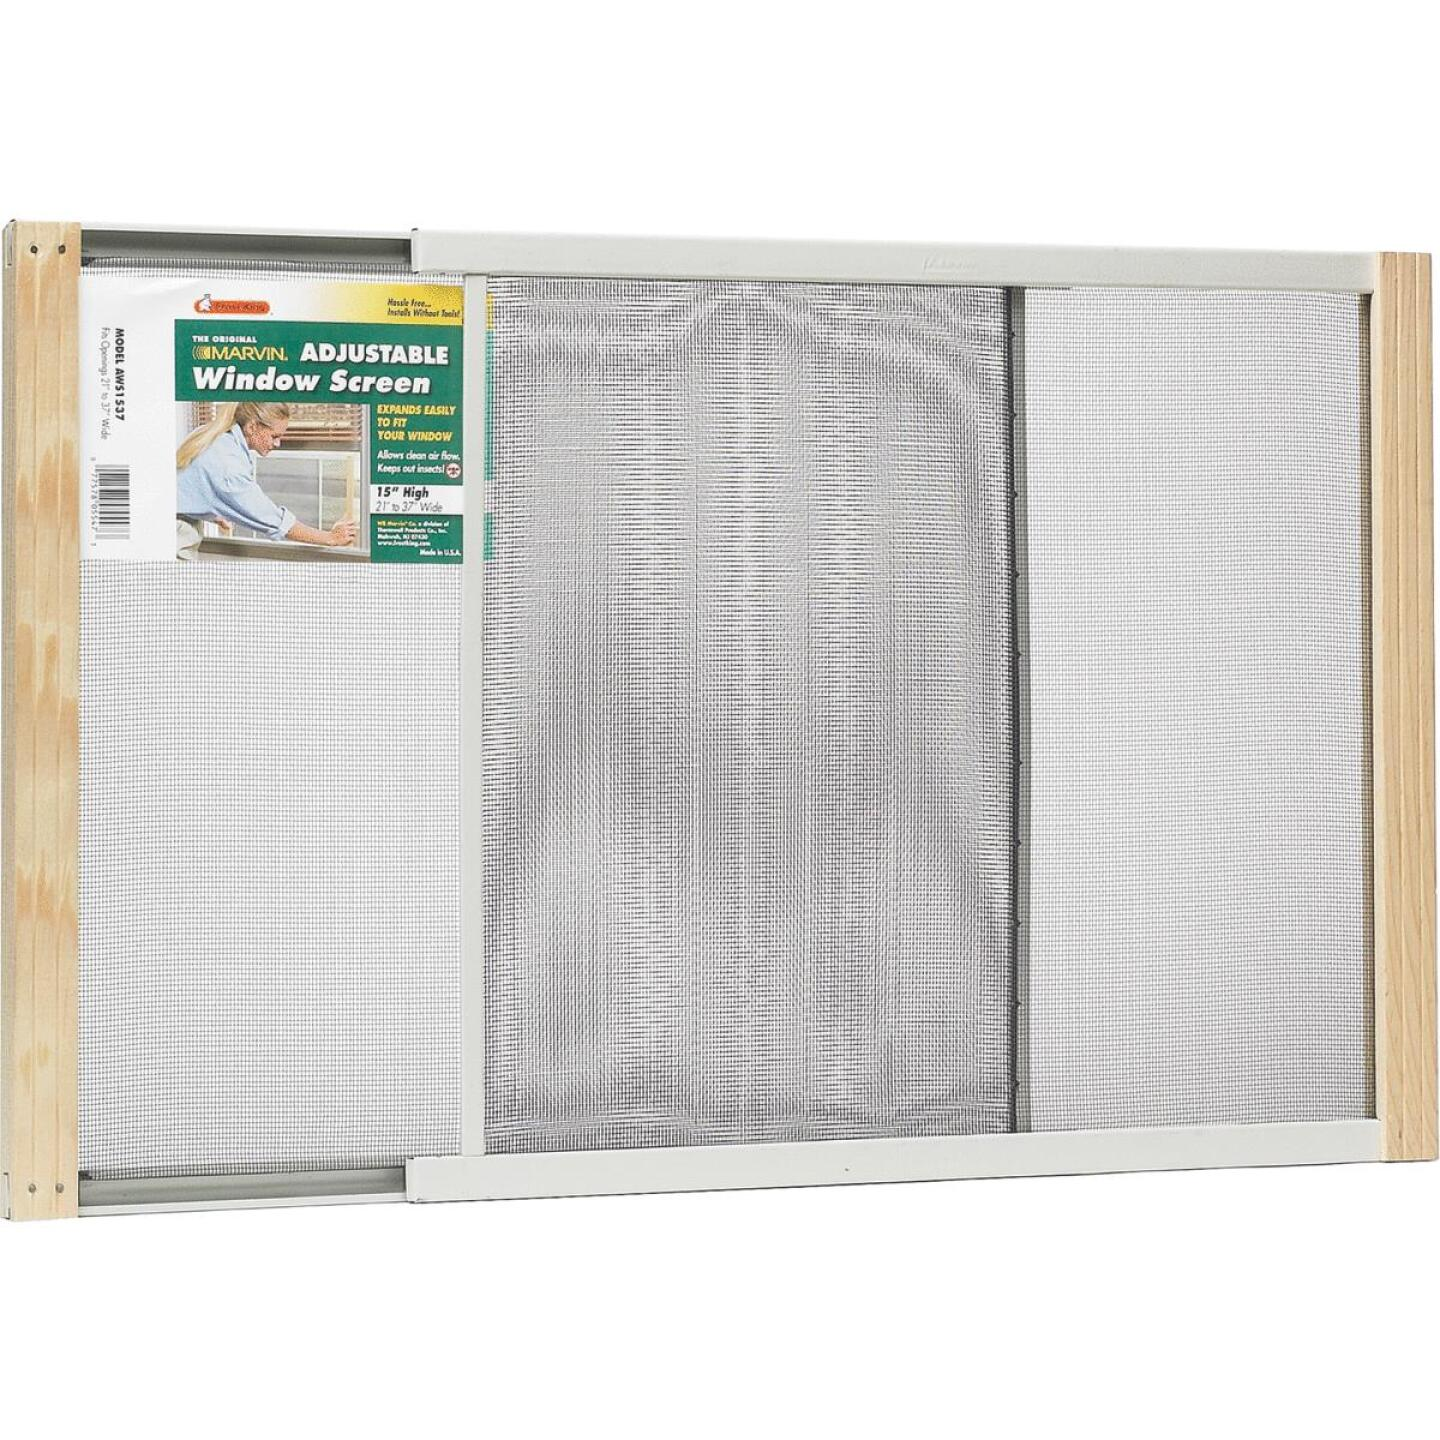 W.B. Marvin 15 In. x 21-37 In. Adjustable Window Screens by Frost King Image 1